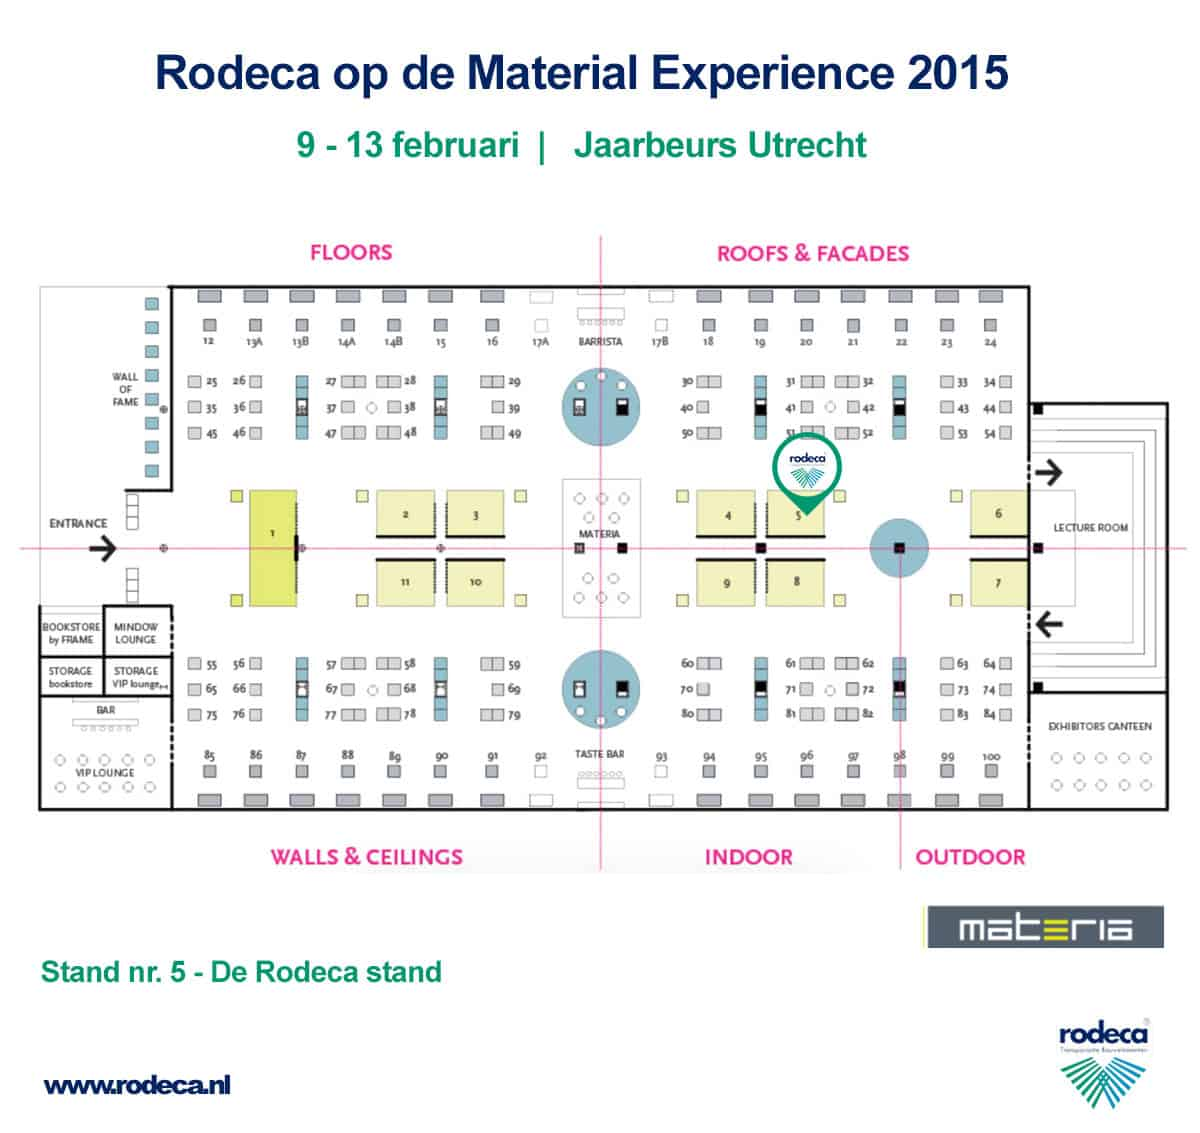 Rodeca-op-Material-Xperience